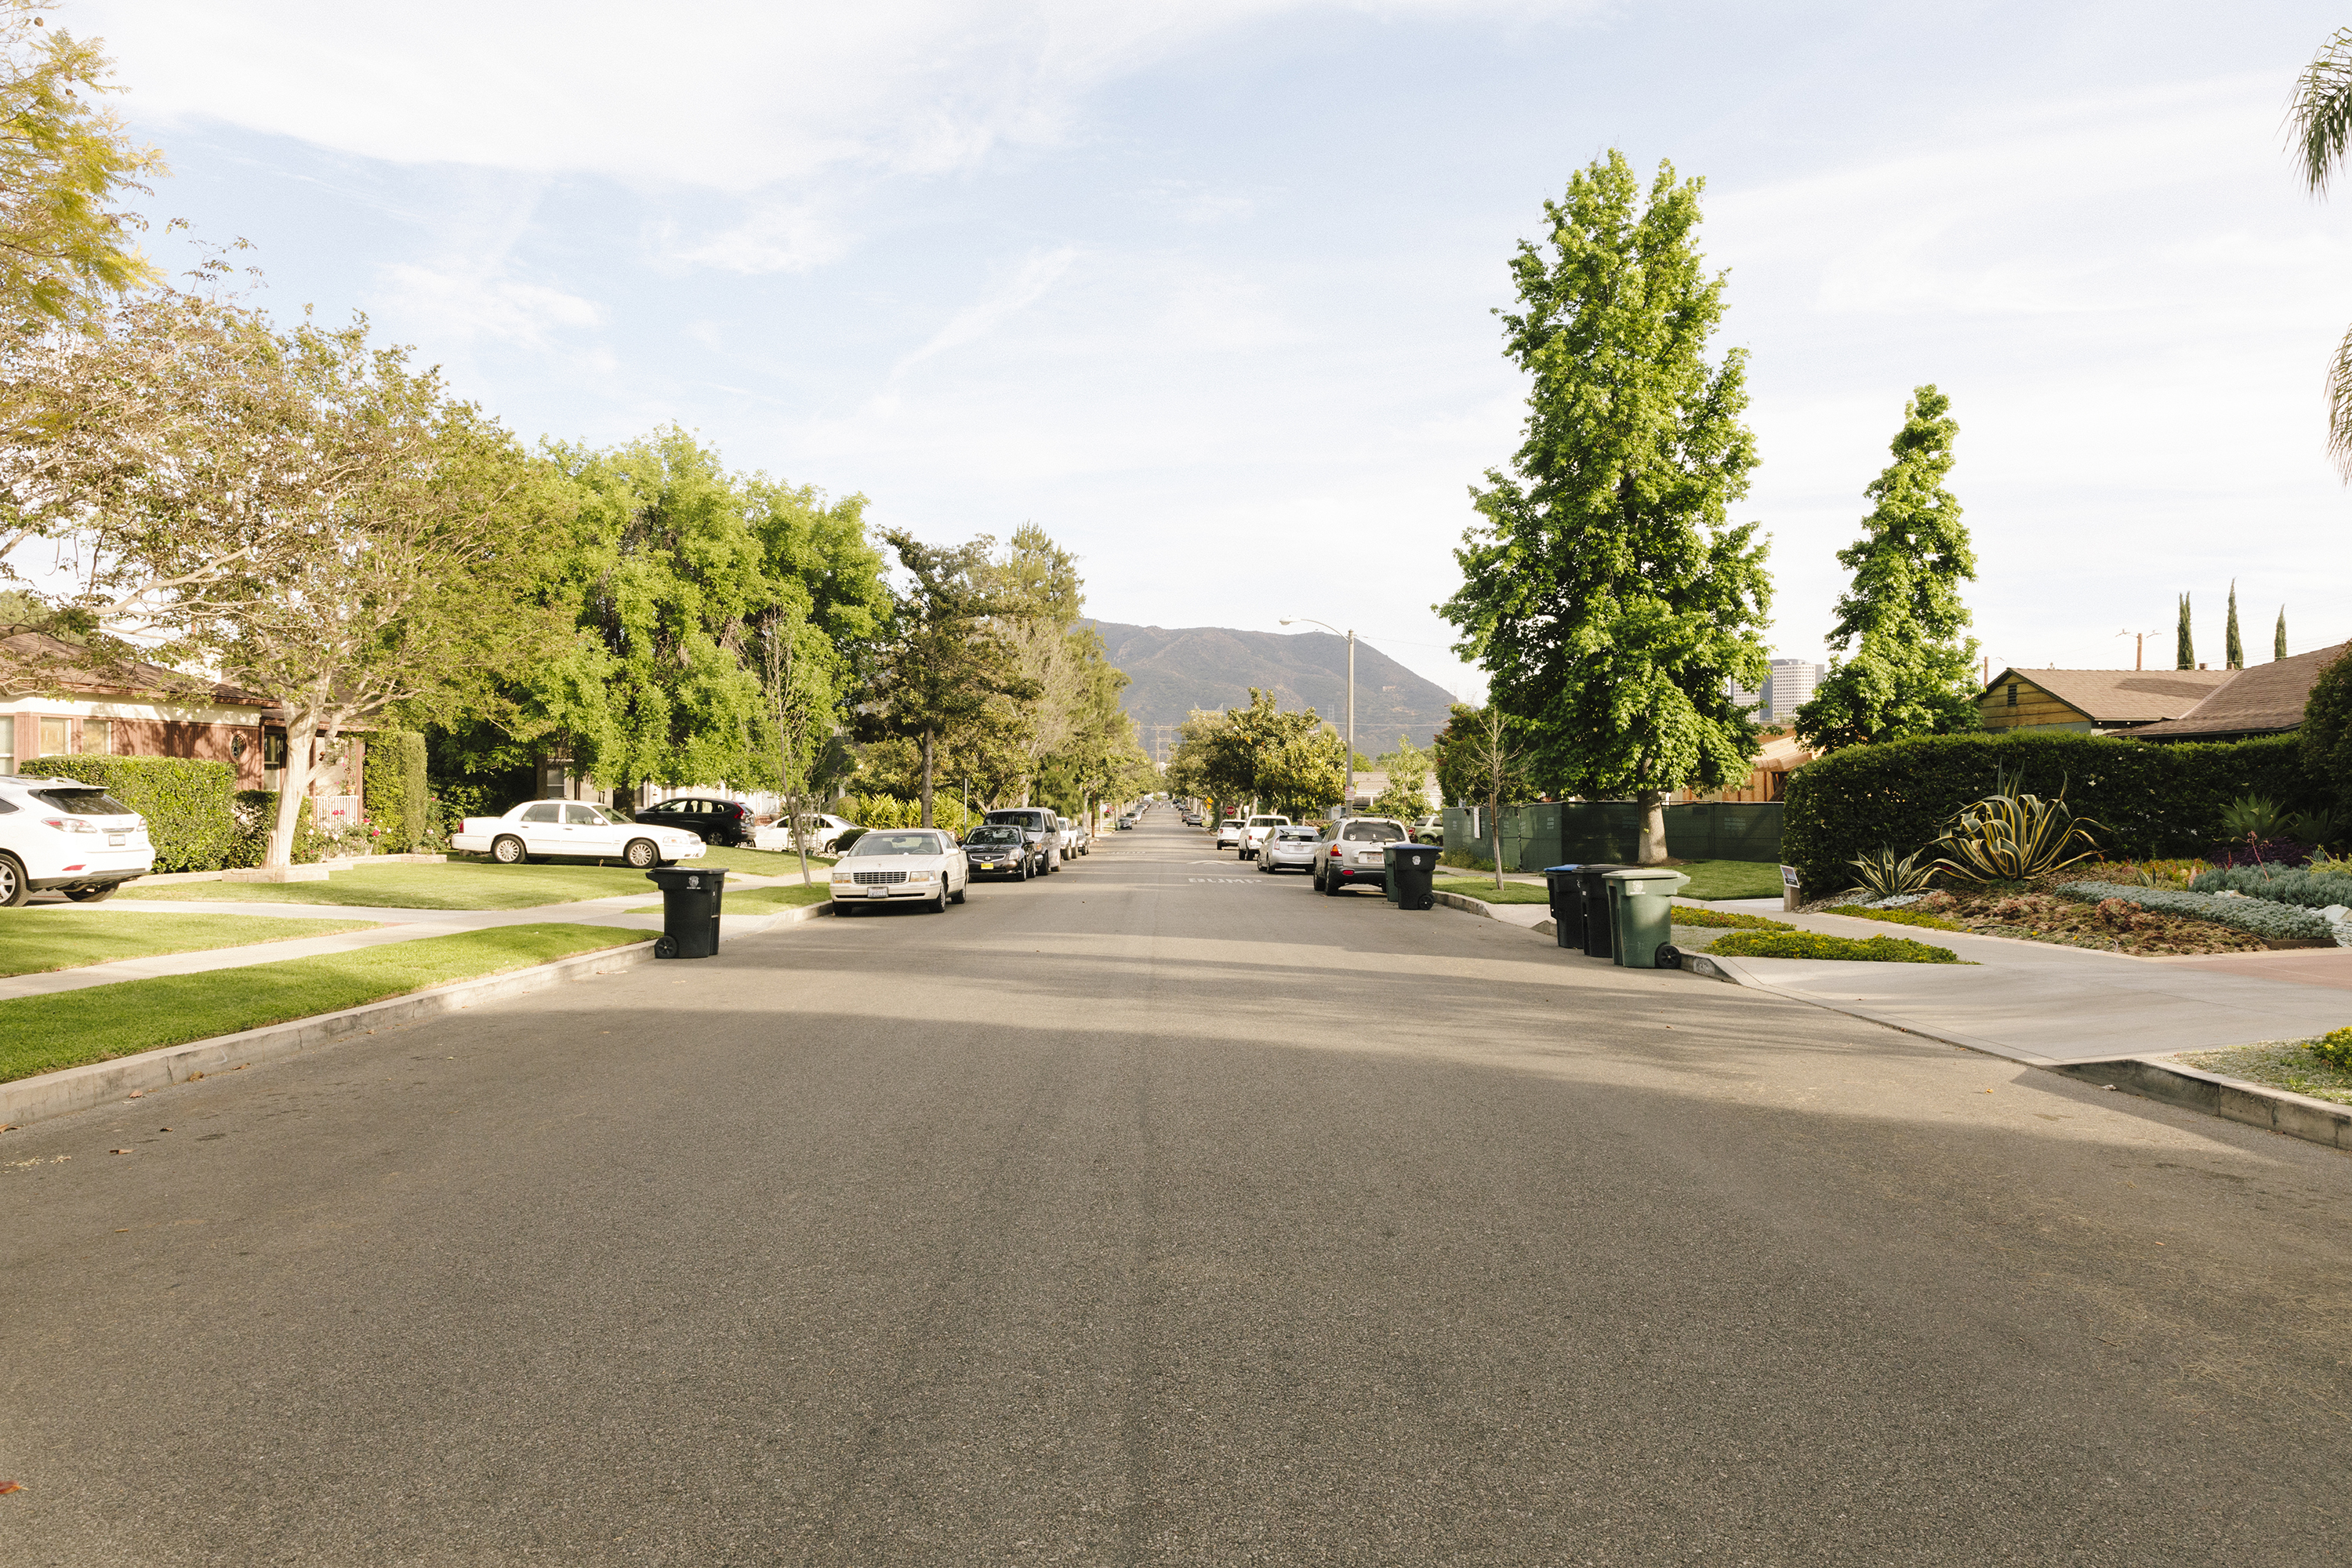 Residential street in the San Fernando Valley